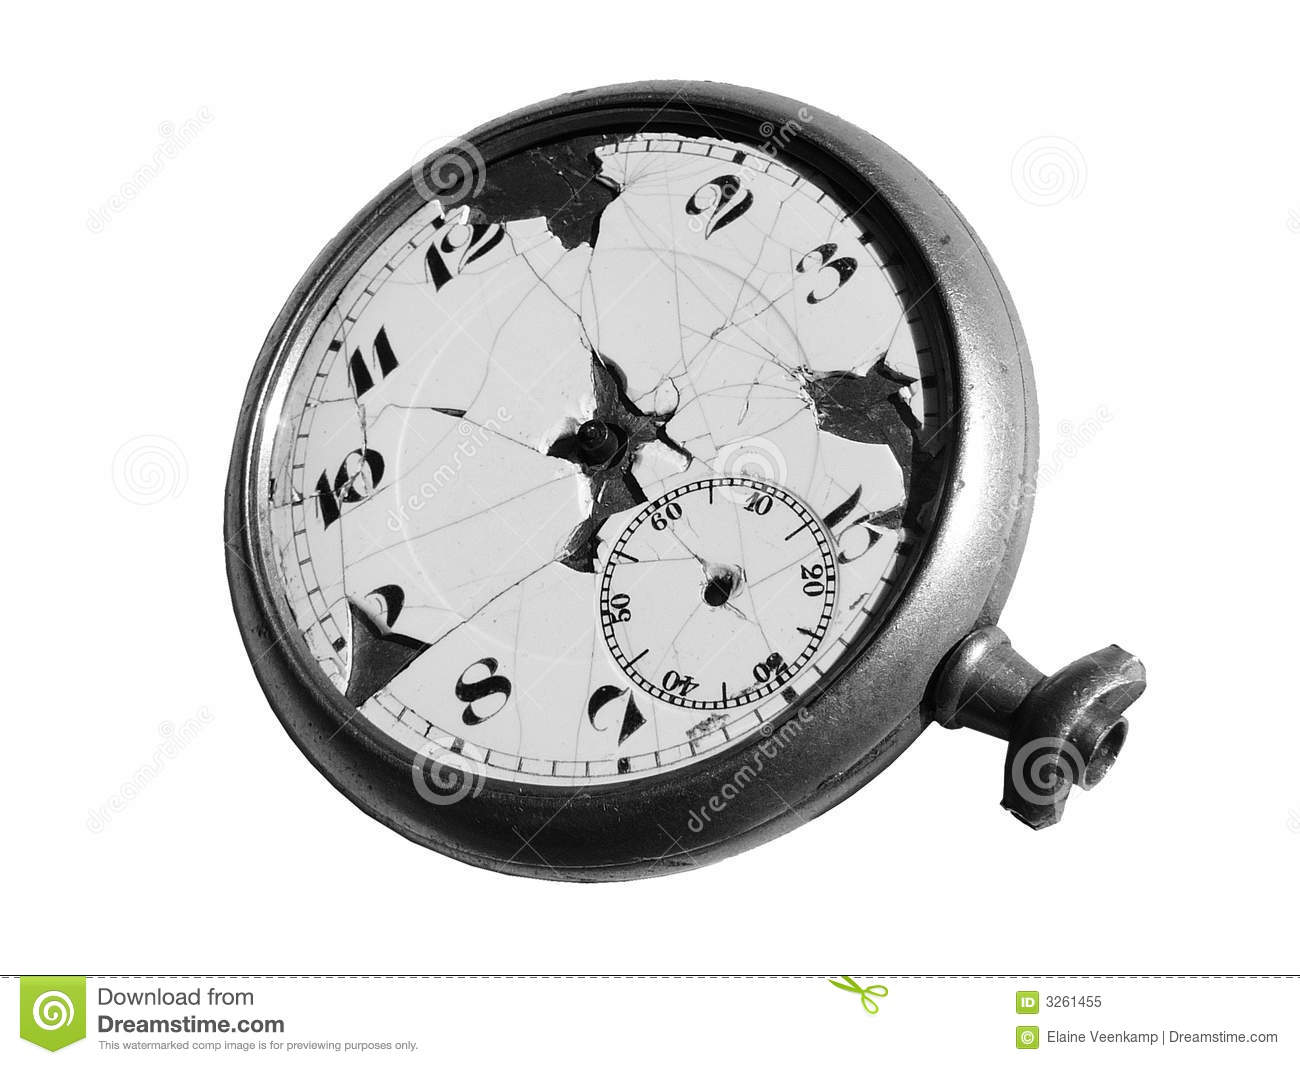 how to change time on pocket watch